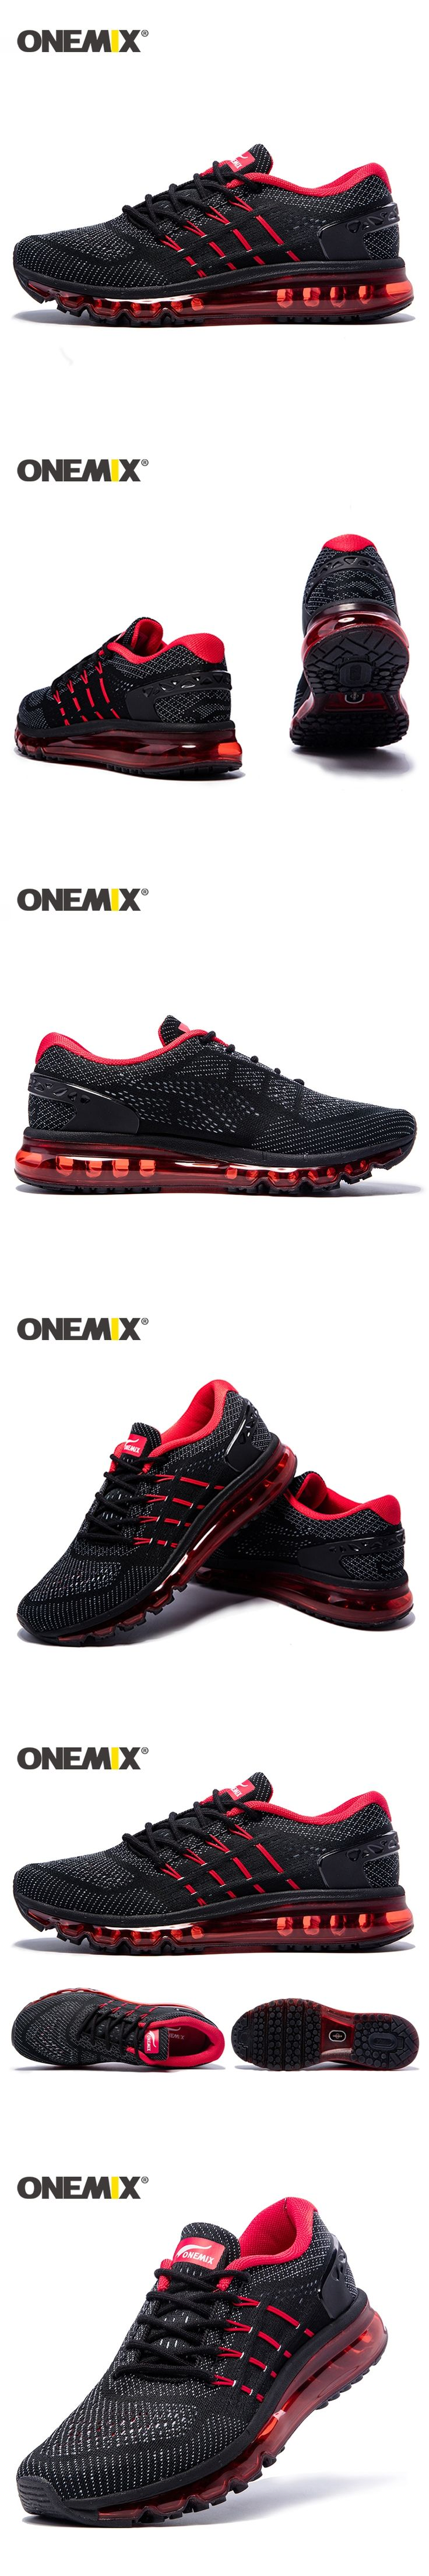 Onemix 2017 new men running shoes breathable mesh sport shoes for men new athletic outdoor sneakers zapatos de hombre EUR39-46